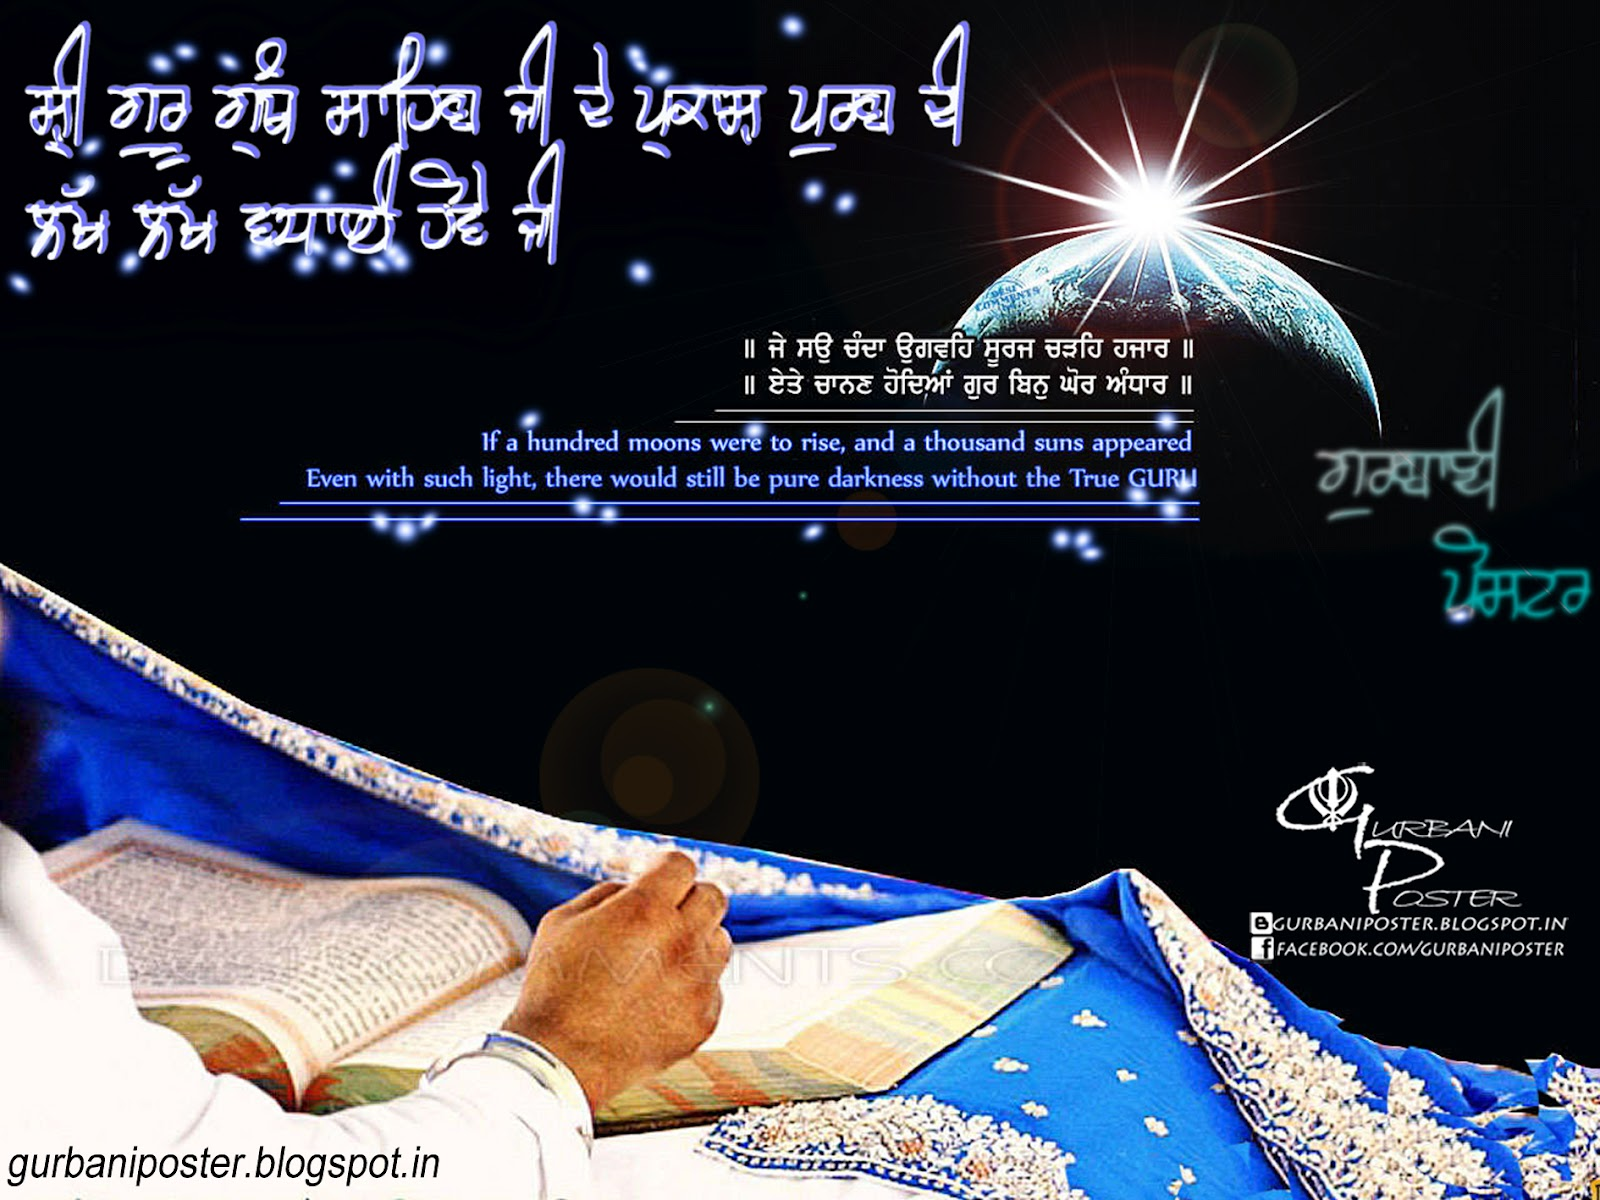 sri guru granth sahib scriptures of Dasam granth (ਦਸਮ ਗ੍ਰੰਥ) is a scripture containing much of the texts attributed to tenth sikh guru, guru gobind singh dasam granth is separate granth and should not be confused with sri guru granth sahib.